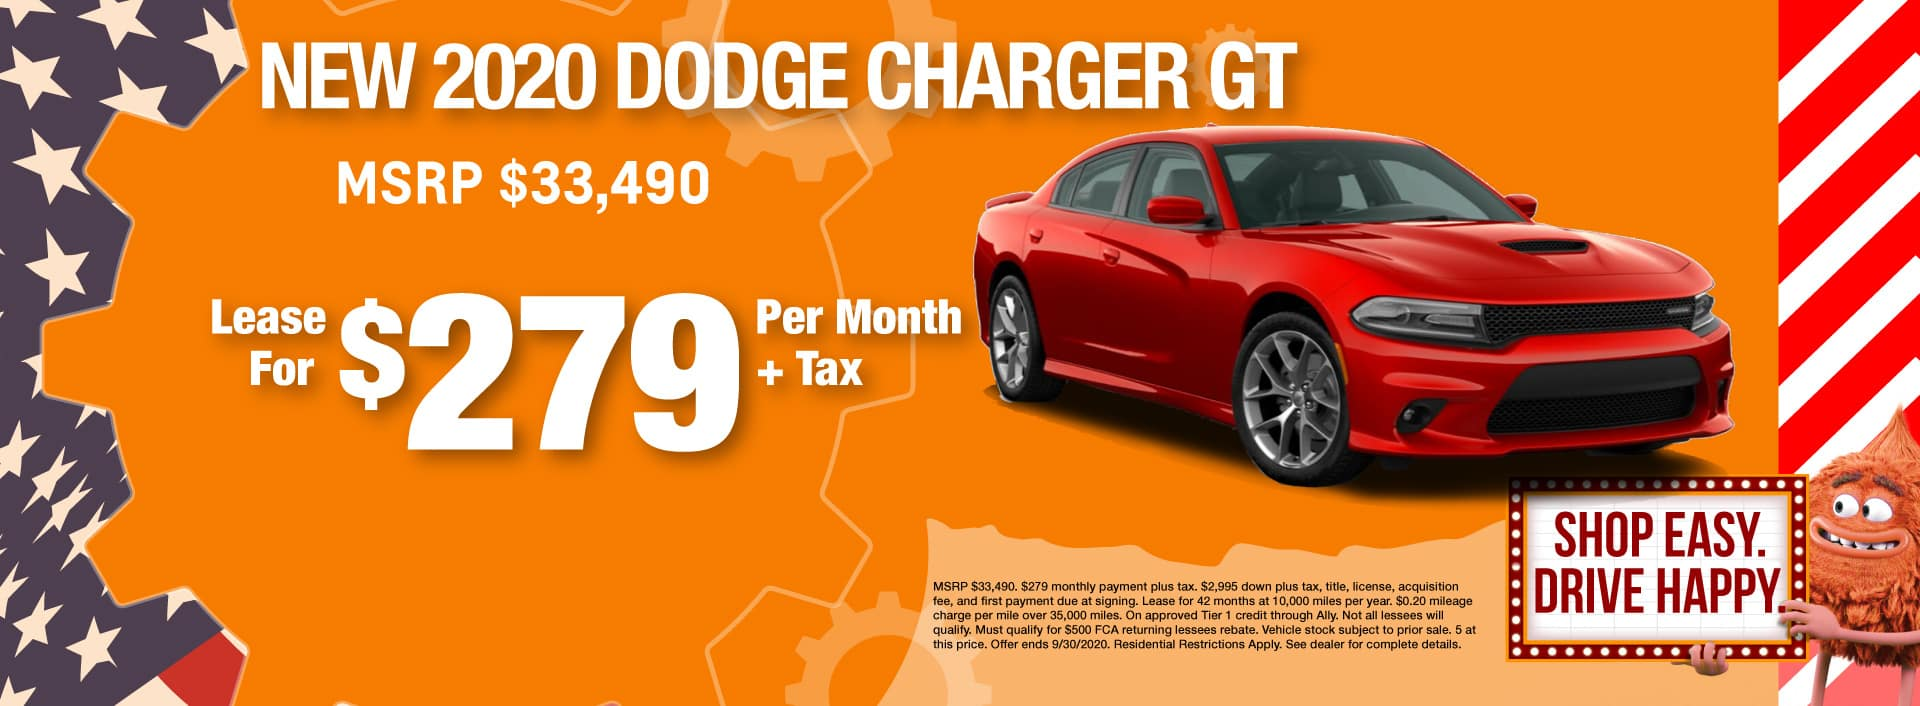 OC 1920px705 Offers_Sep30_Charger GT